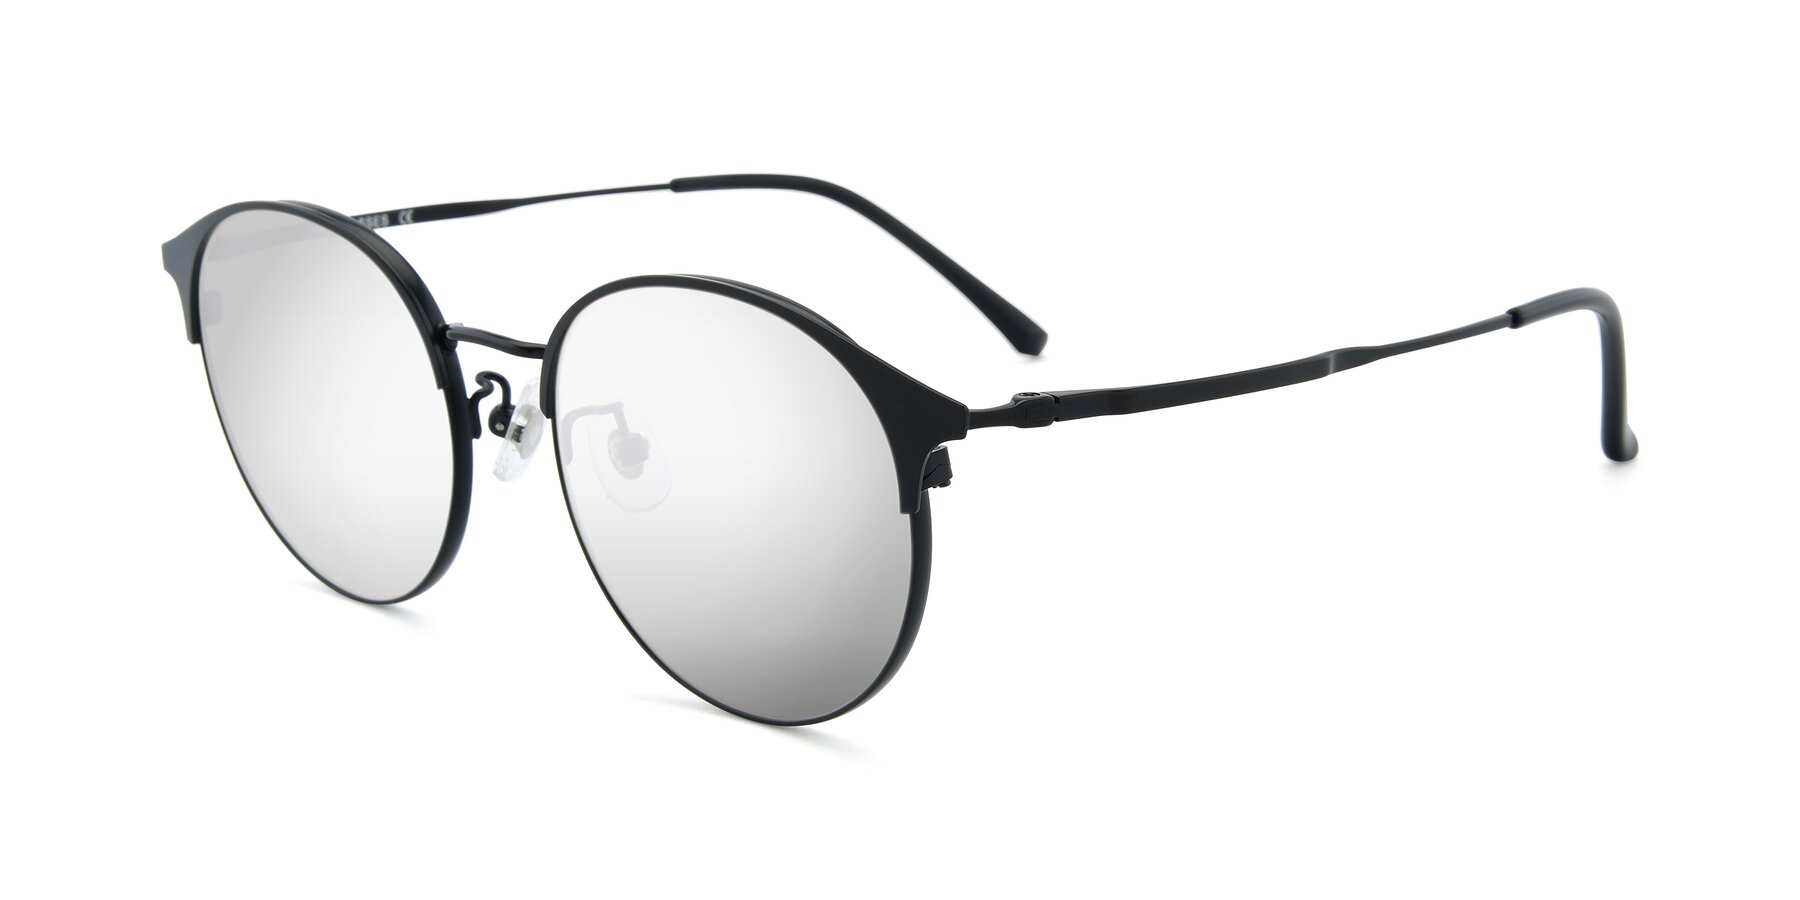 Angle of XC-8031 in Matte Black with Silver Mirrored Lenses